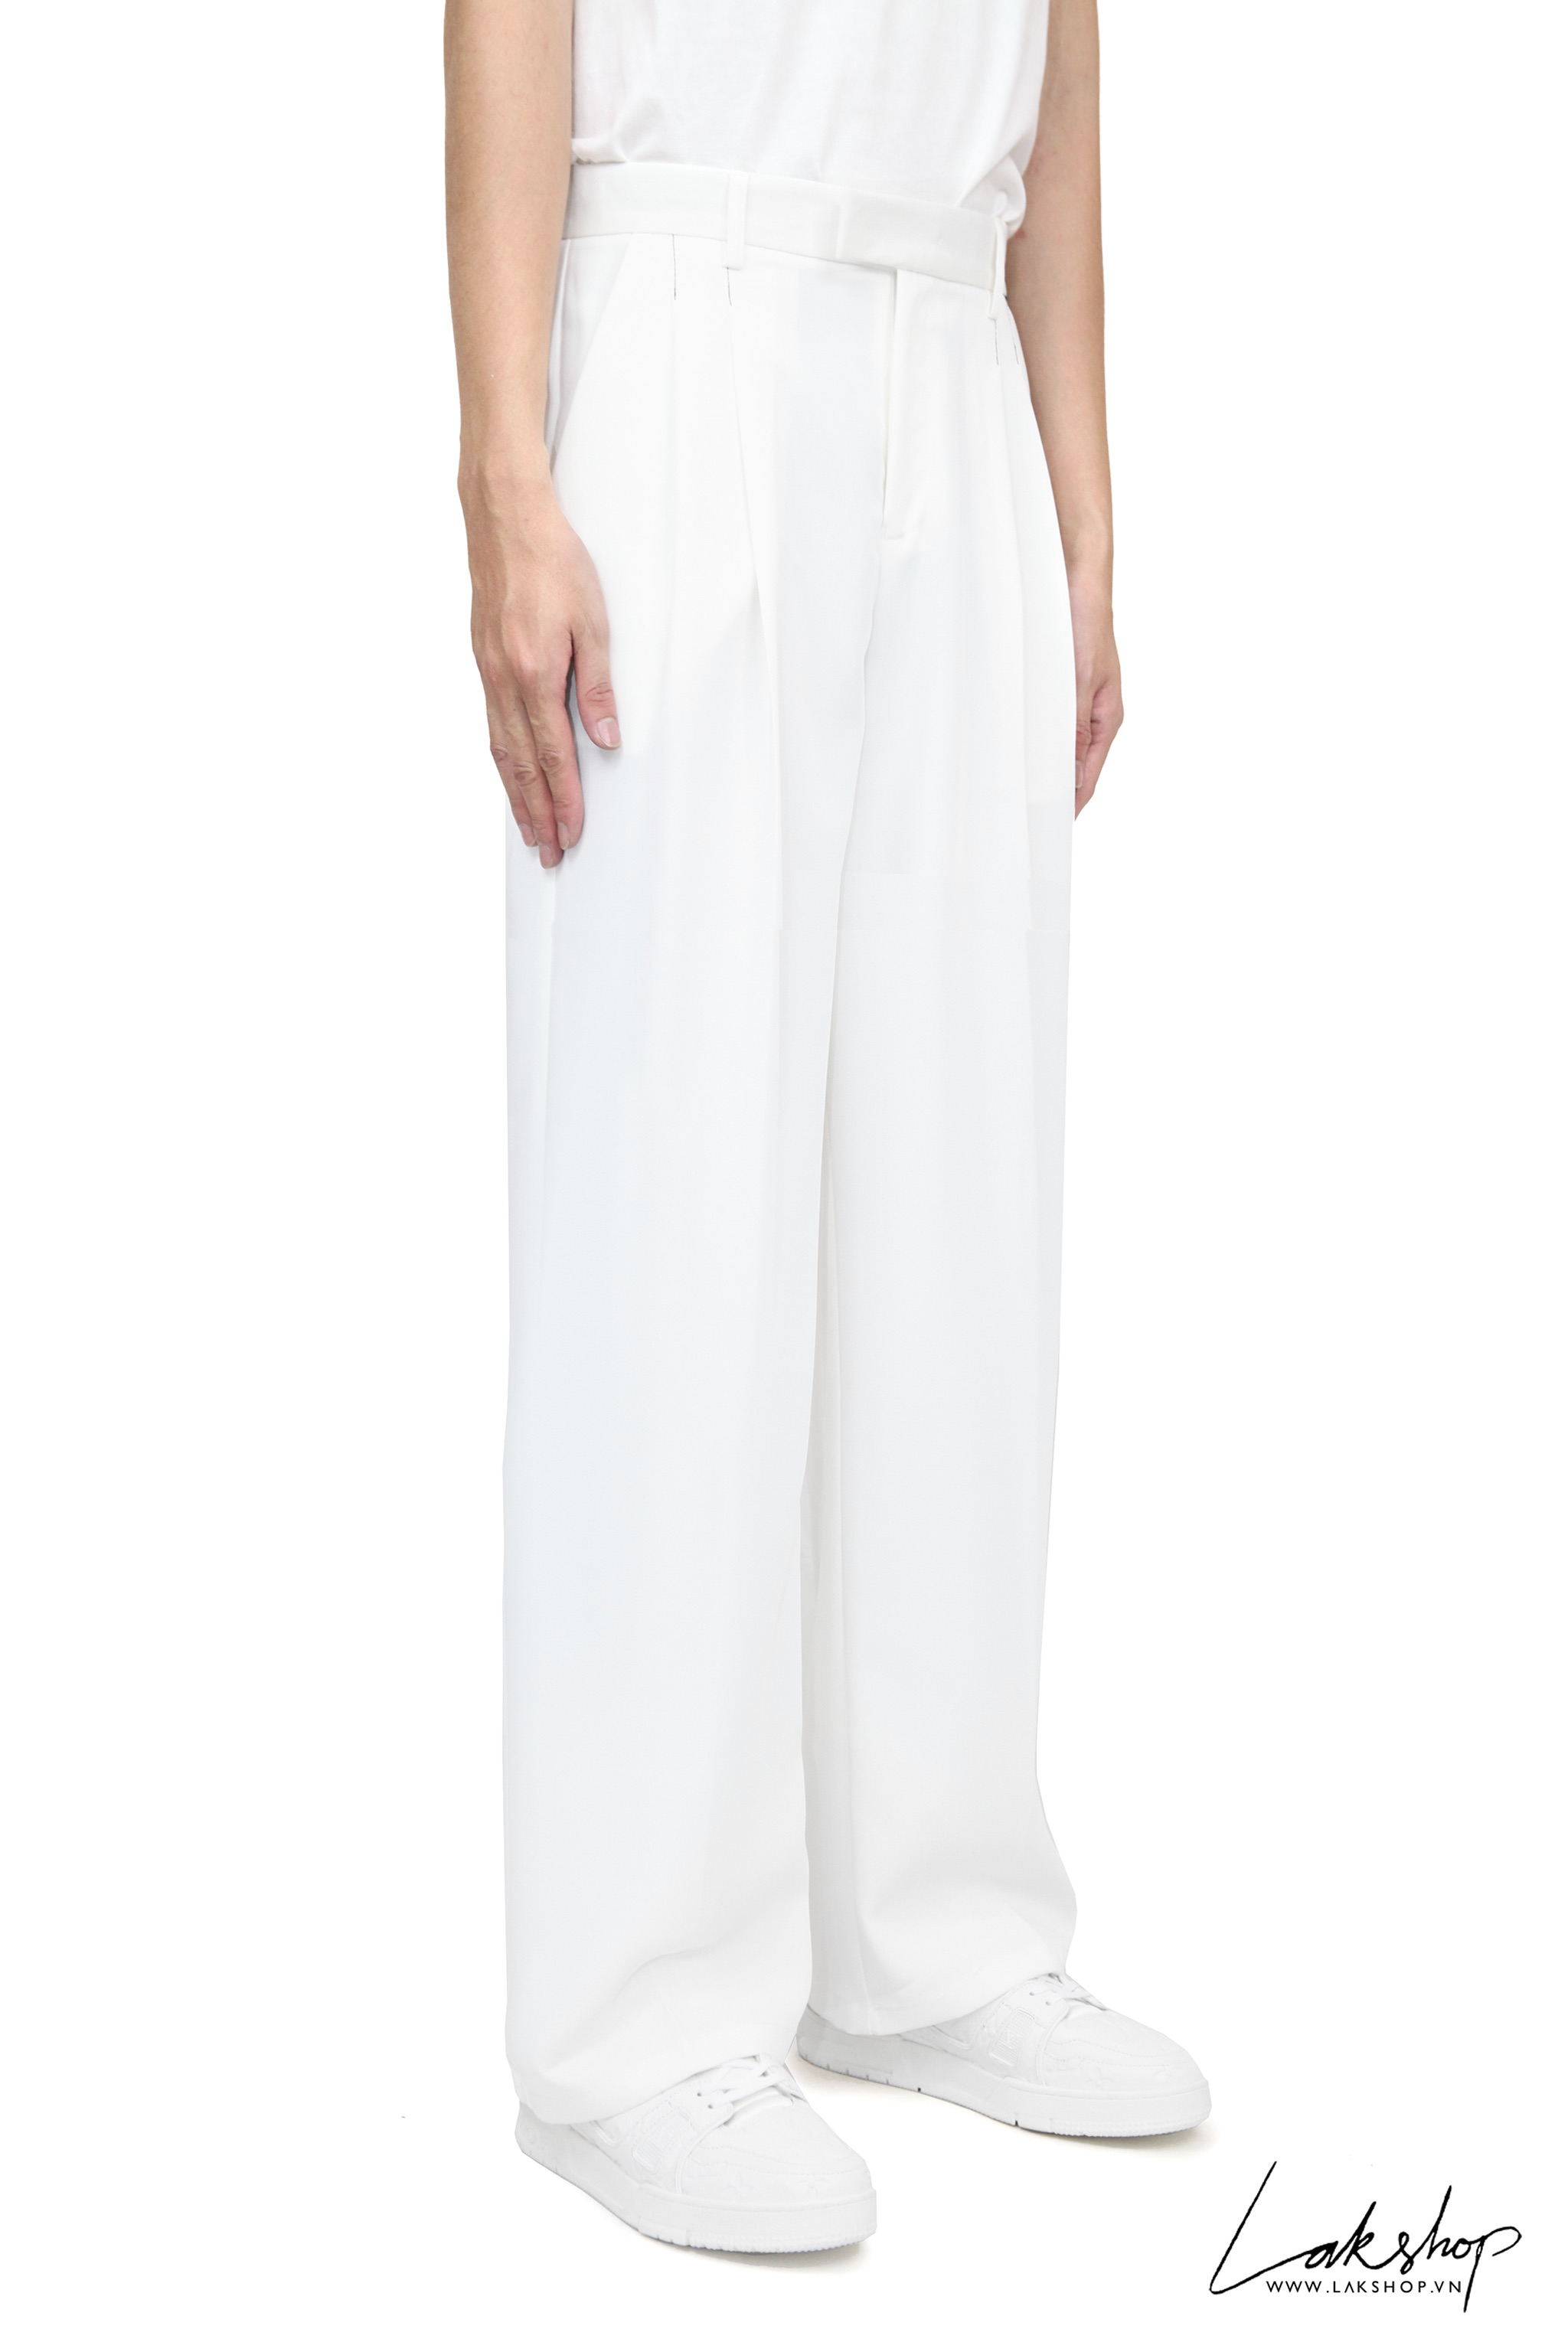 Loose White Loose Pant With Black Thread